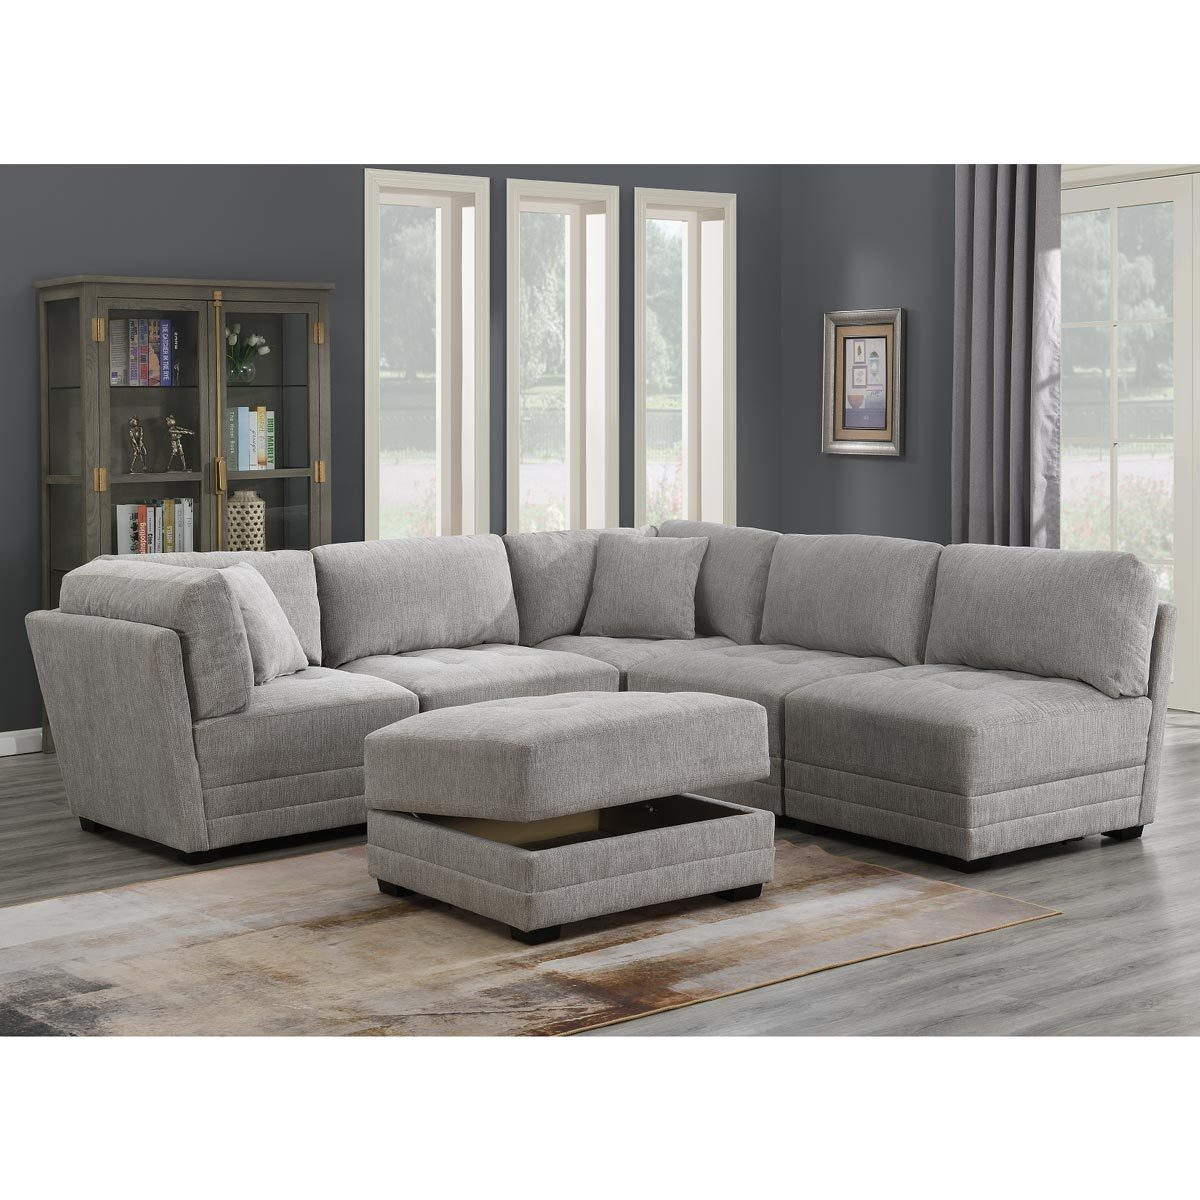 mstar international norris 6 piece modular fabric sectional sofa with storage ottoman costco uk